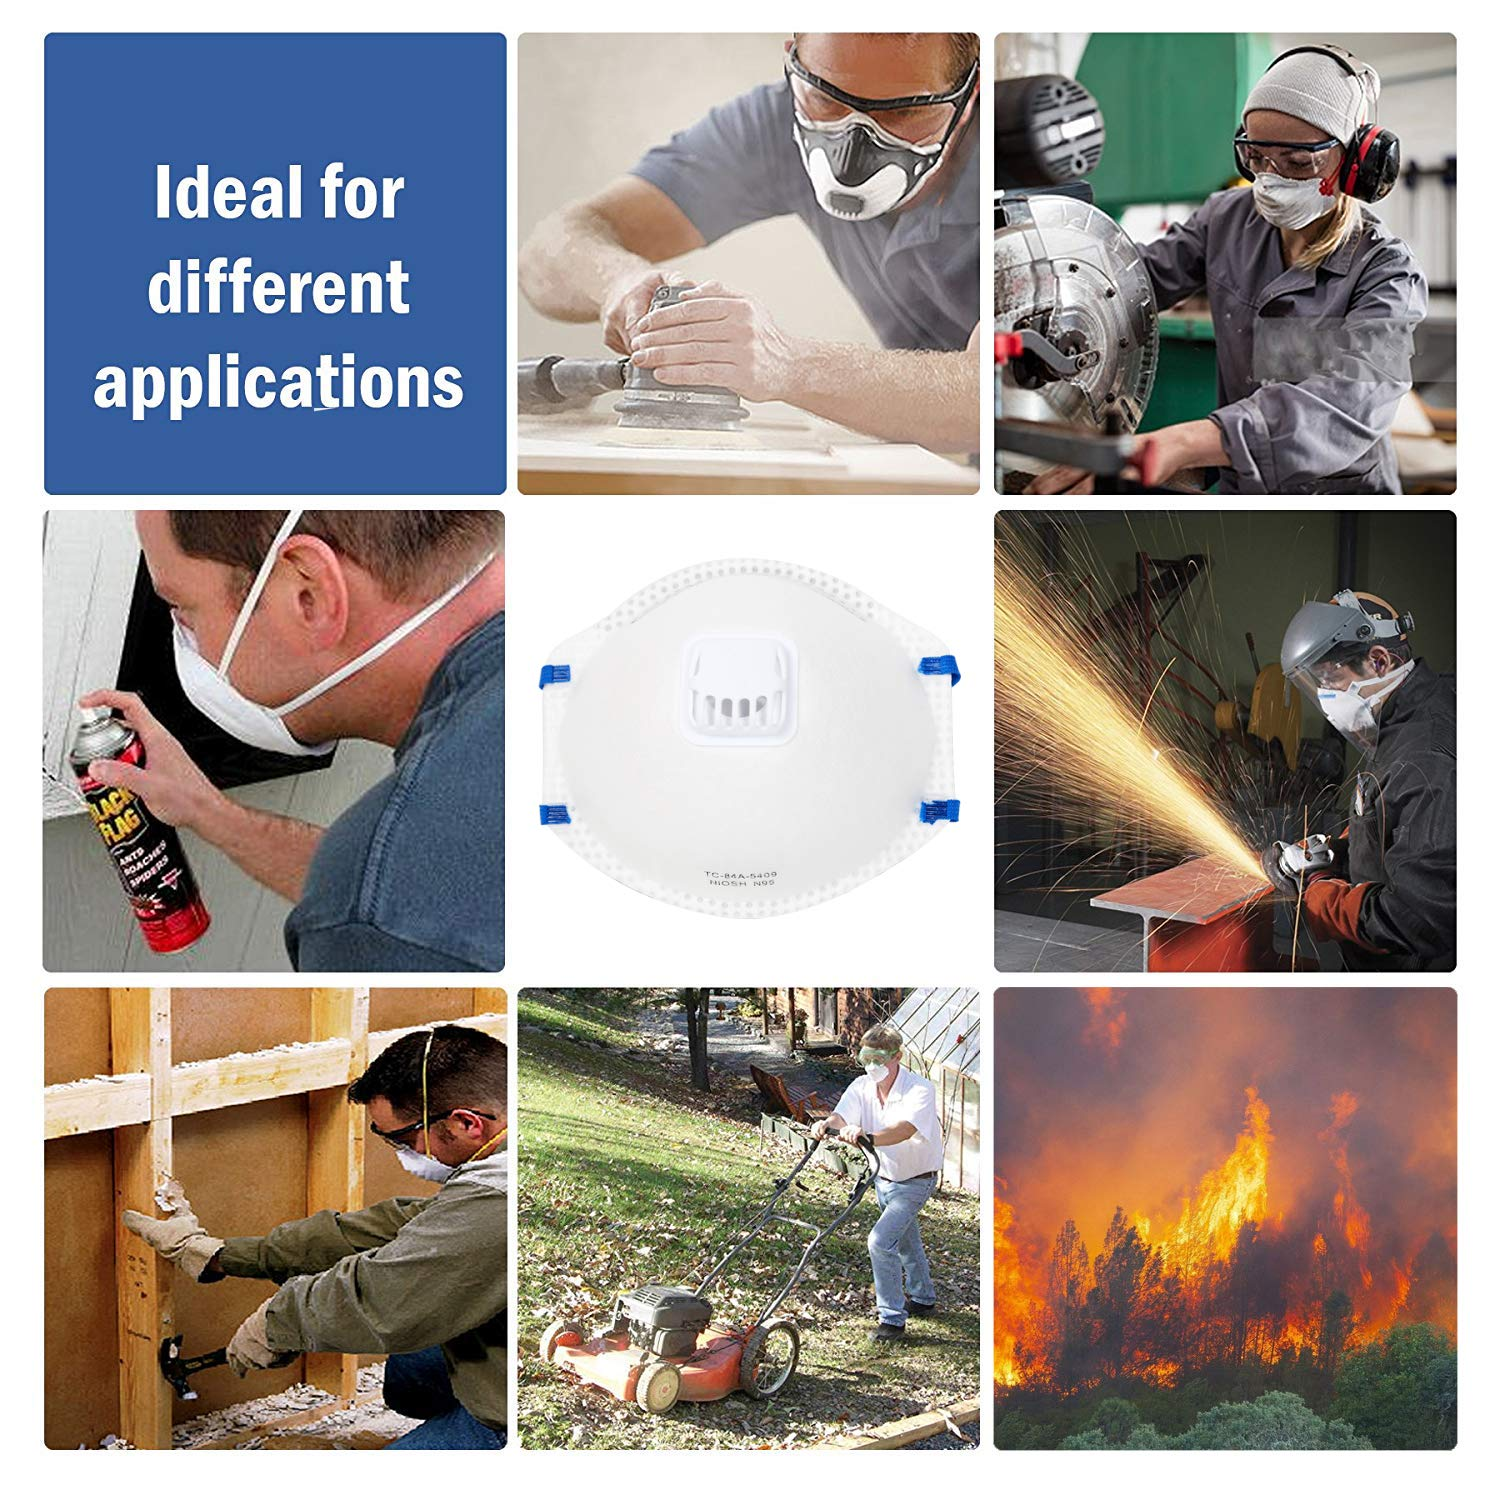 DCM Particulate Respirator N95 NIOSH Certified Safety Protection Face Mask with Cool Exhalation Valve (15 Pack) Particle Disposable Dust Masks for Air Pollution, Fire Smoke, Sanding, Gardening, Mowing by SUHA (Image #7)